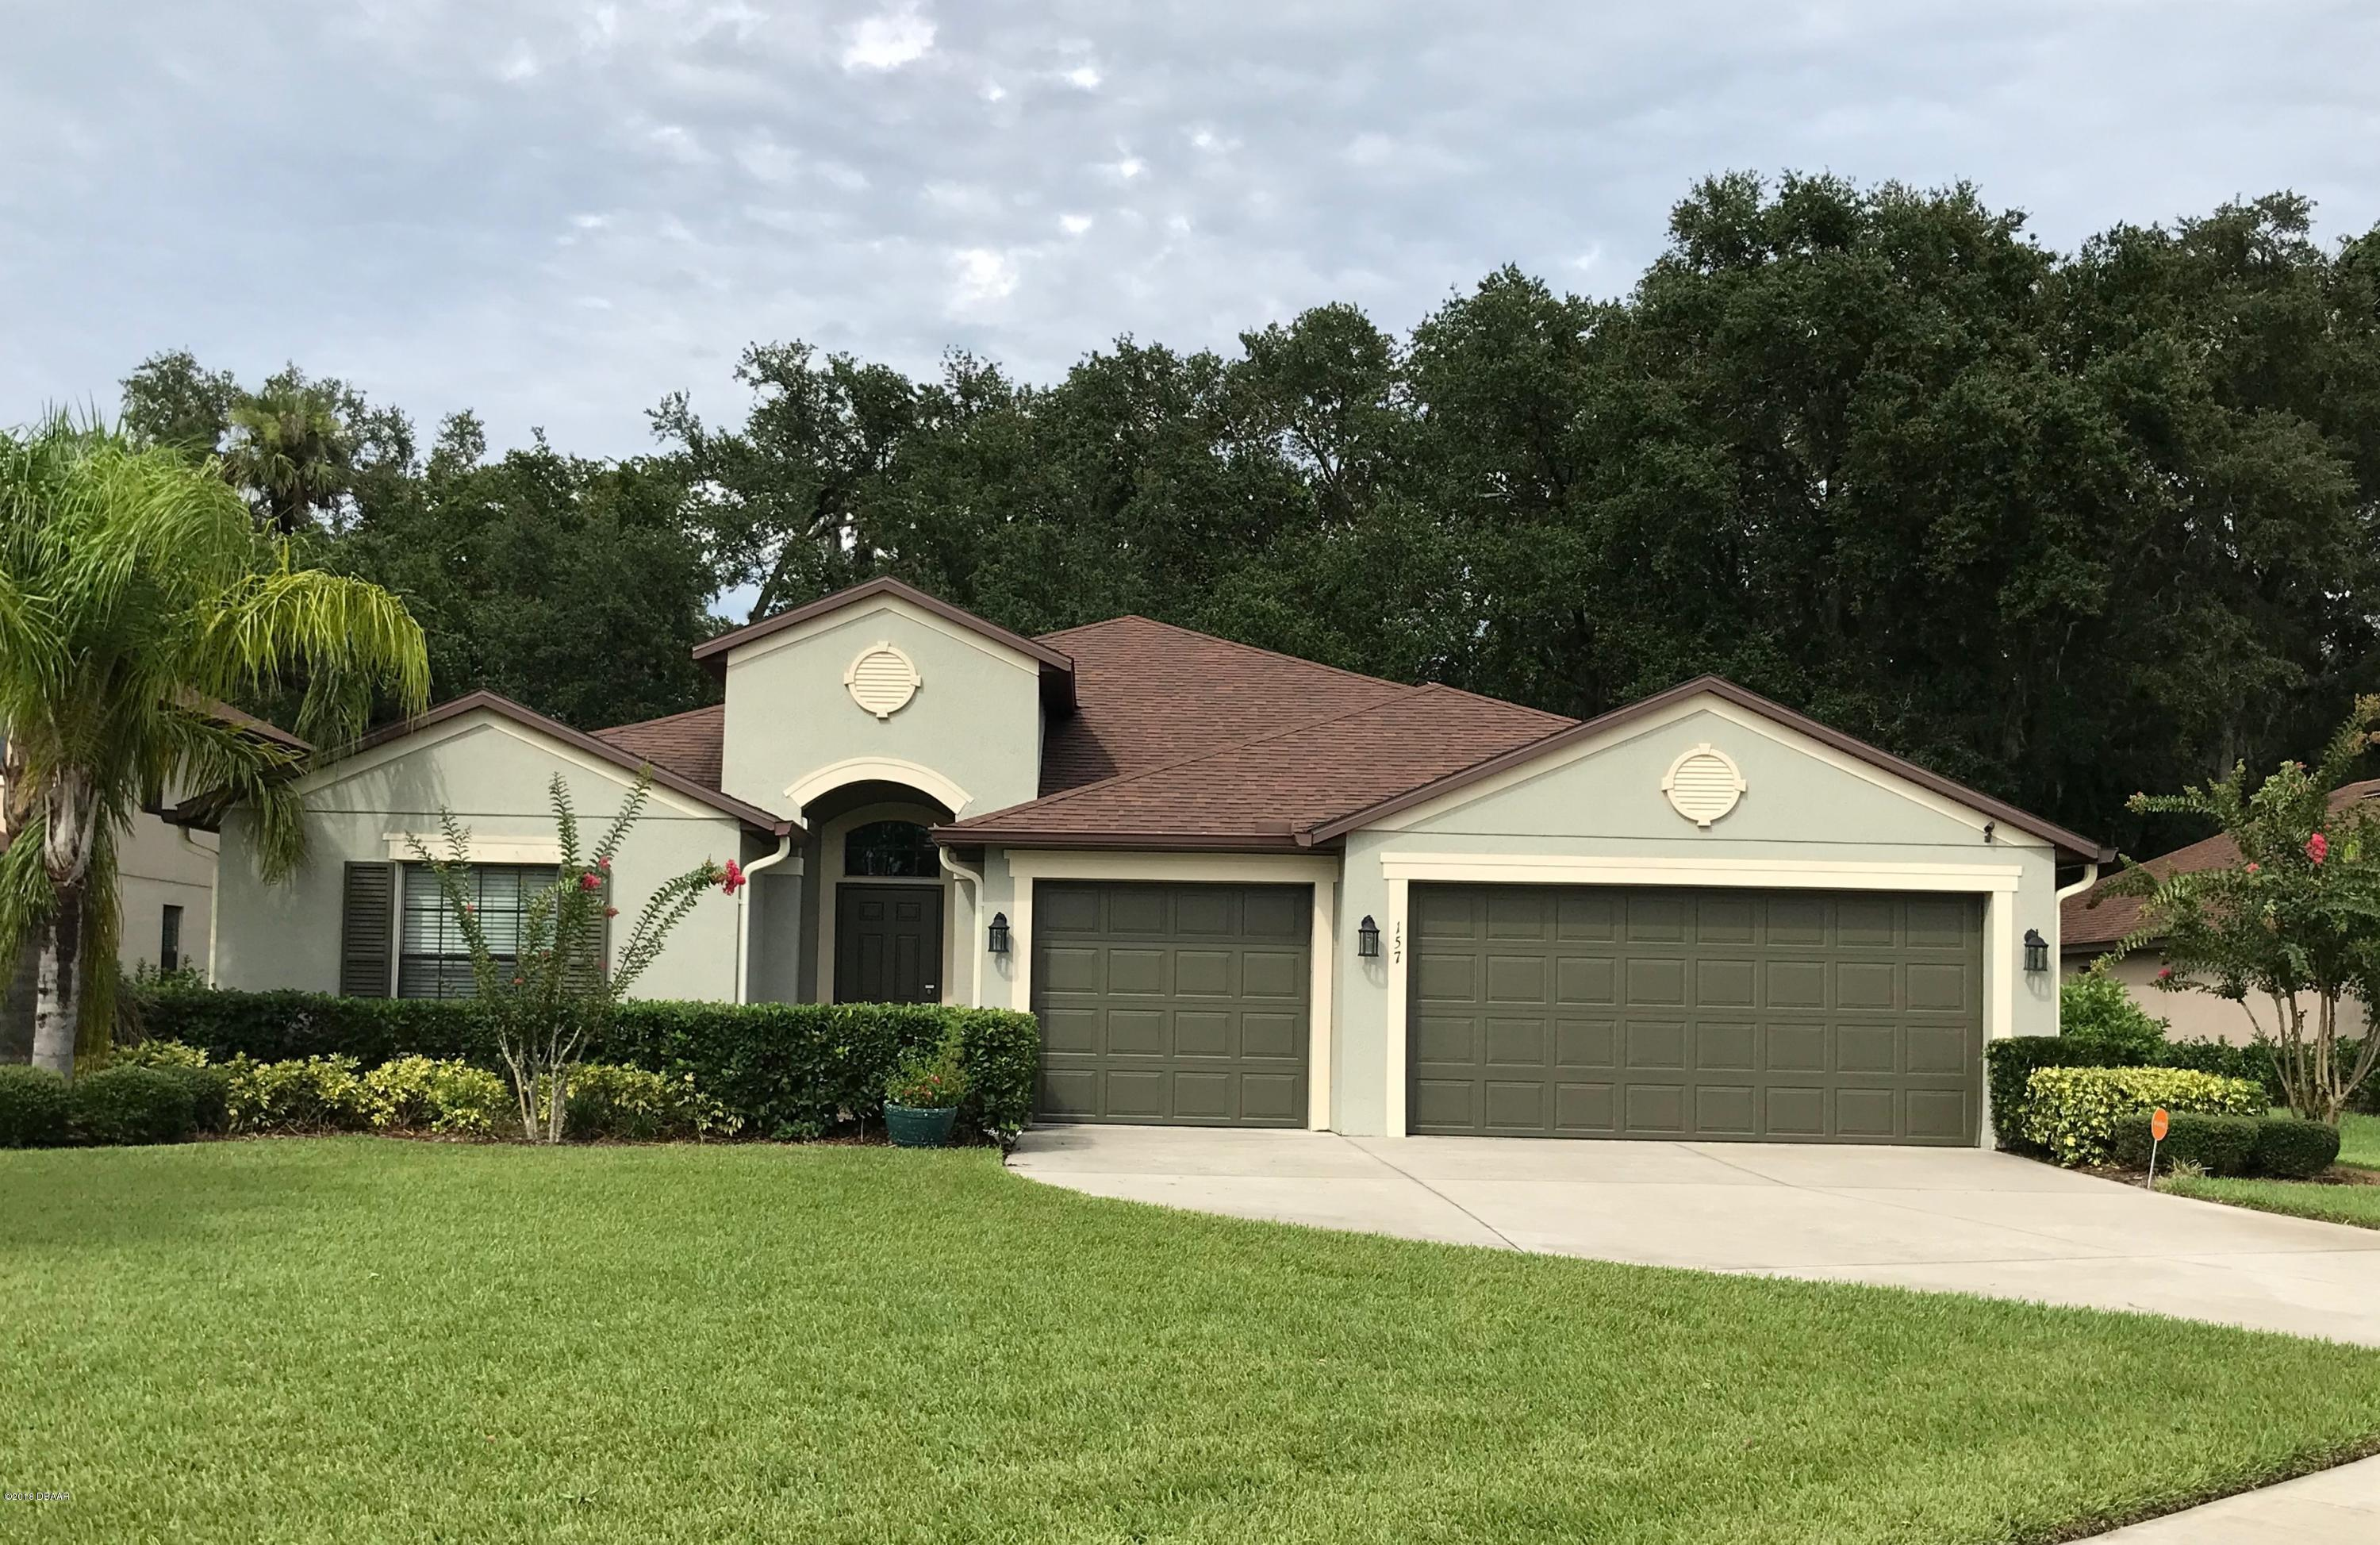 4 bed / 3 baths Home in Daytona Beach for $337,500